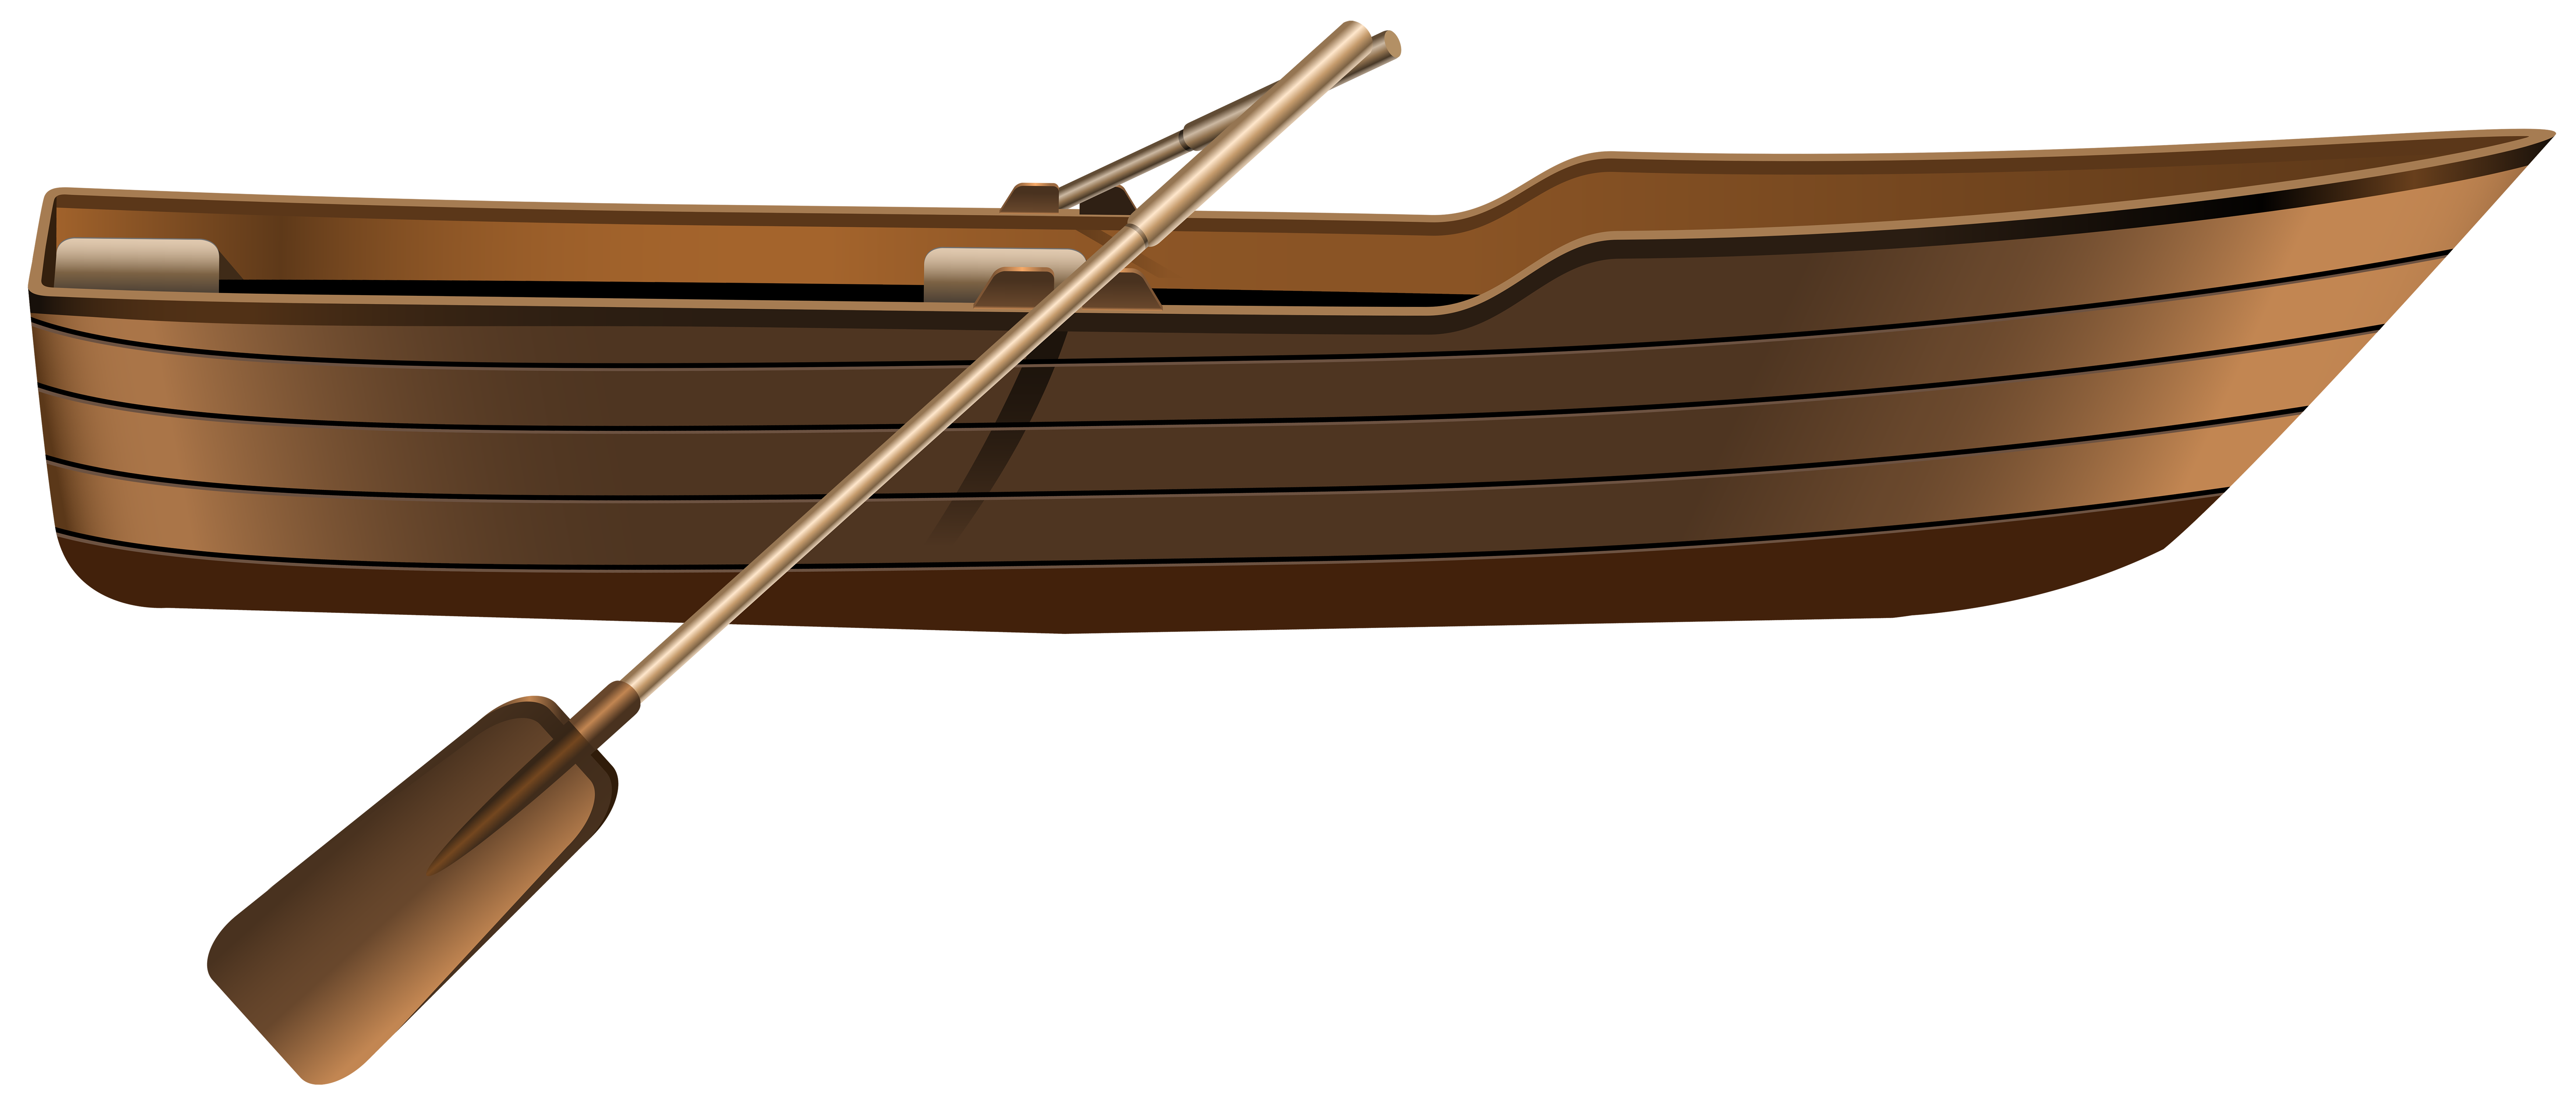 Dog on sailboat clipart svg royalty free stock Wooden Boat PNG Clip Art - Best WEB Clipart svg royalty free stock